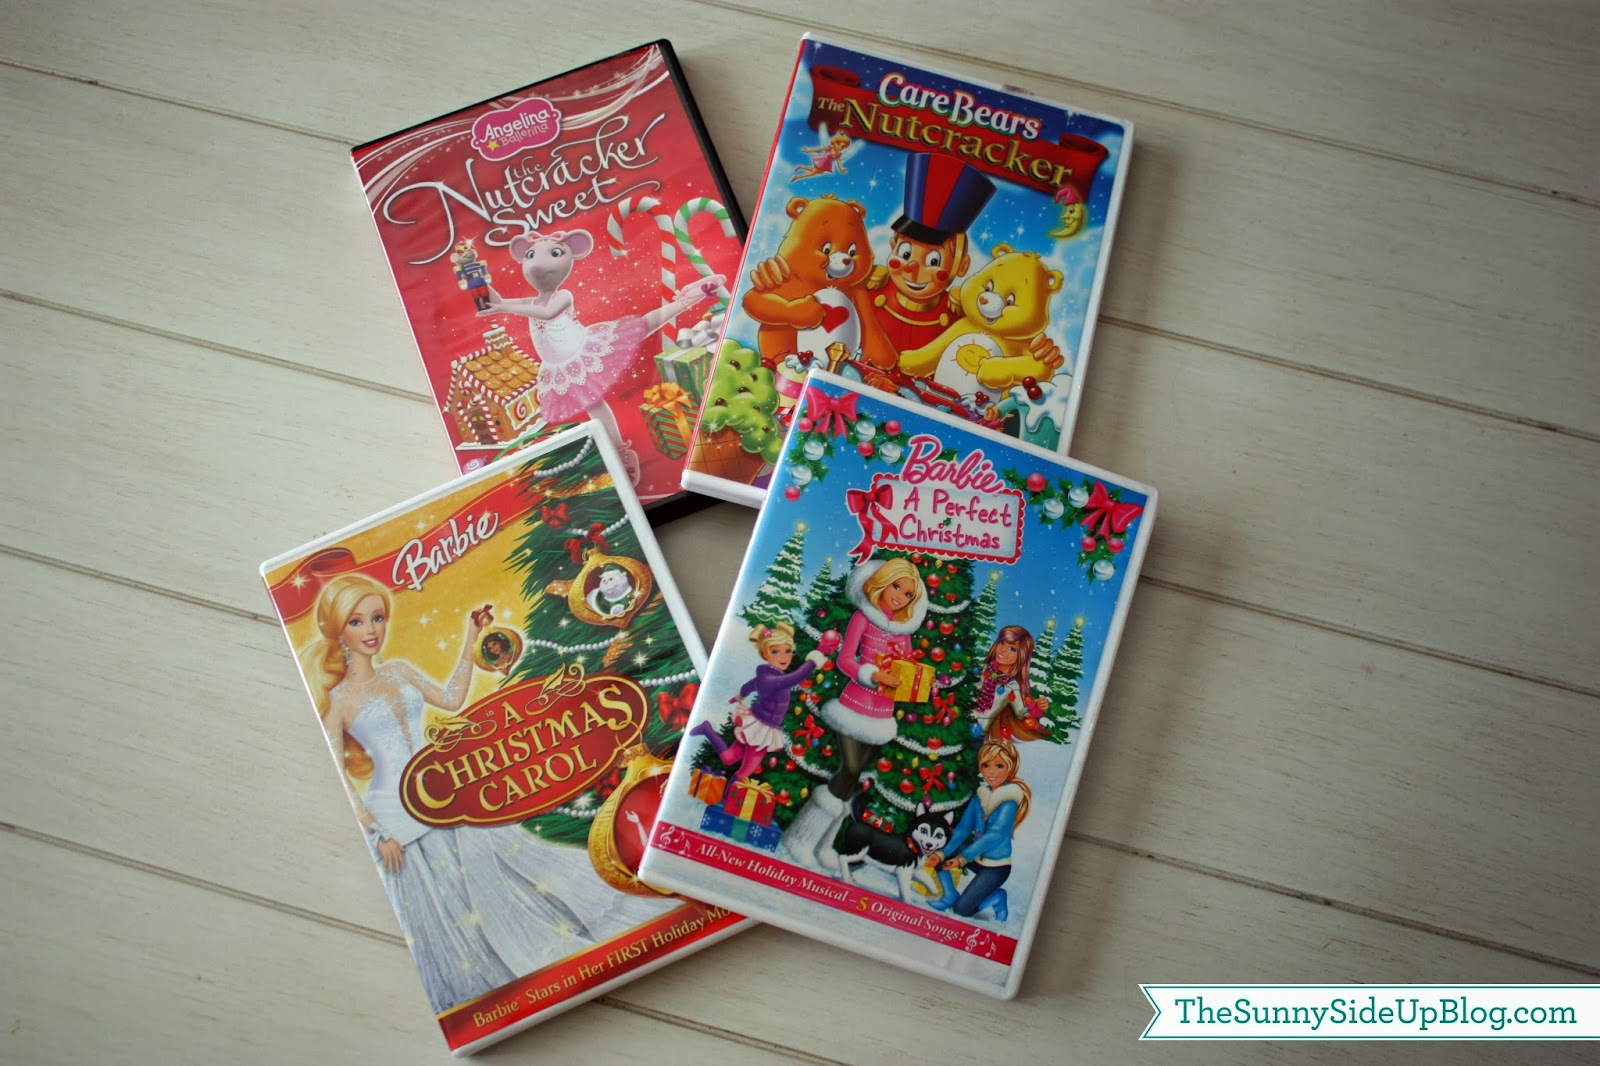 Our Favorite Christmas Movies The Sunny Side Up Blog